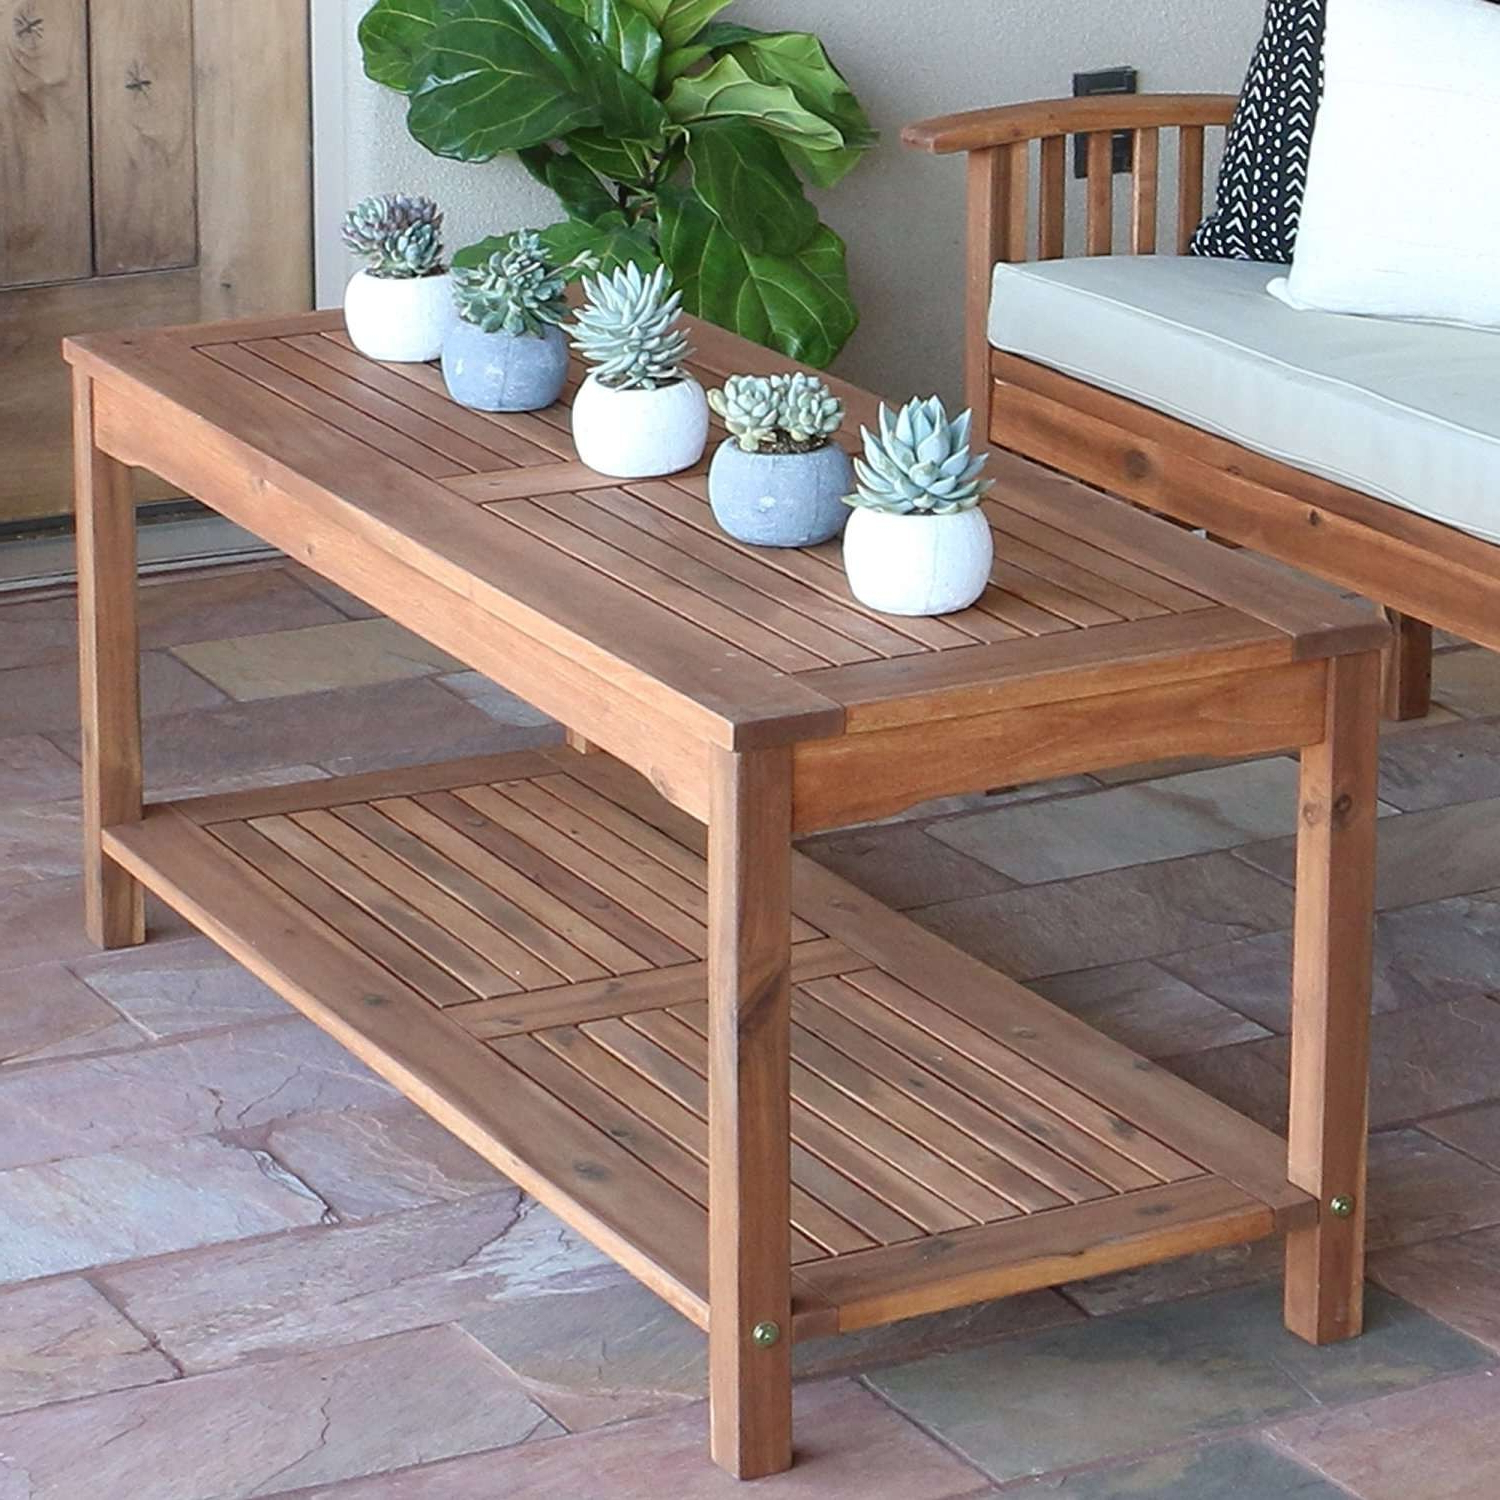 9 Crate And Barrel Concrete Coffee Table Gallery | Coffee Tables Ideas Pertaining To Parsons Walnut Top & Brass Base 48X16 Console Tables (Gallery 14 of 20)